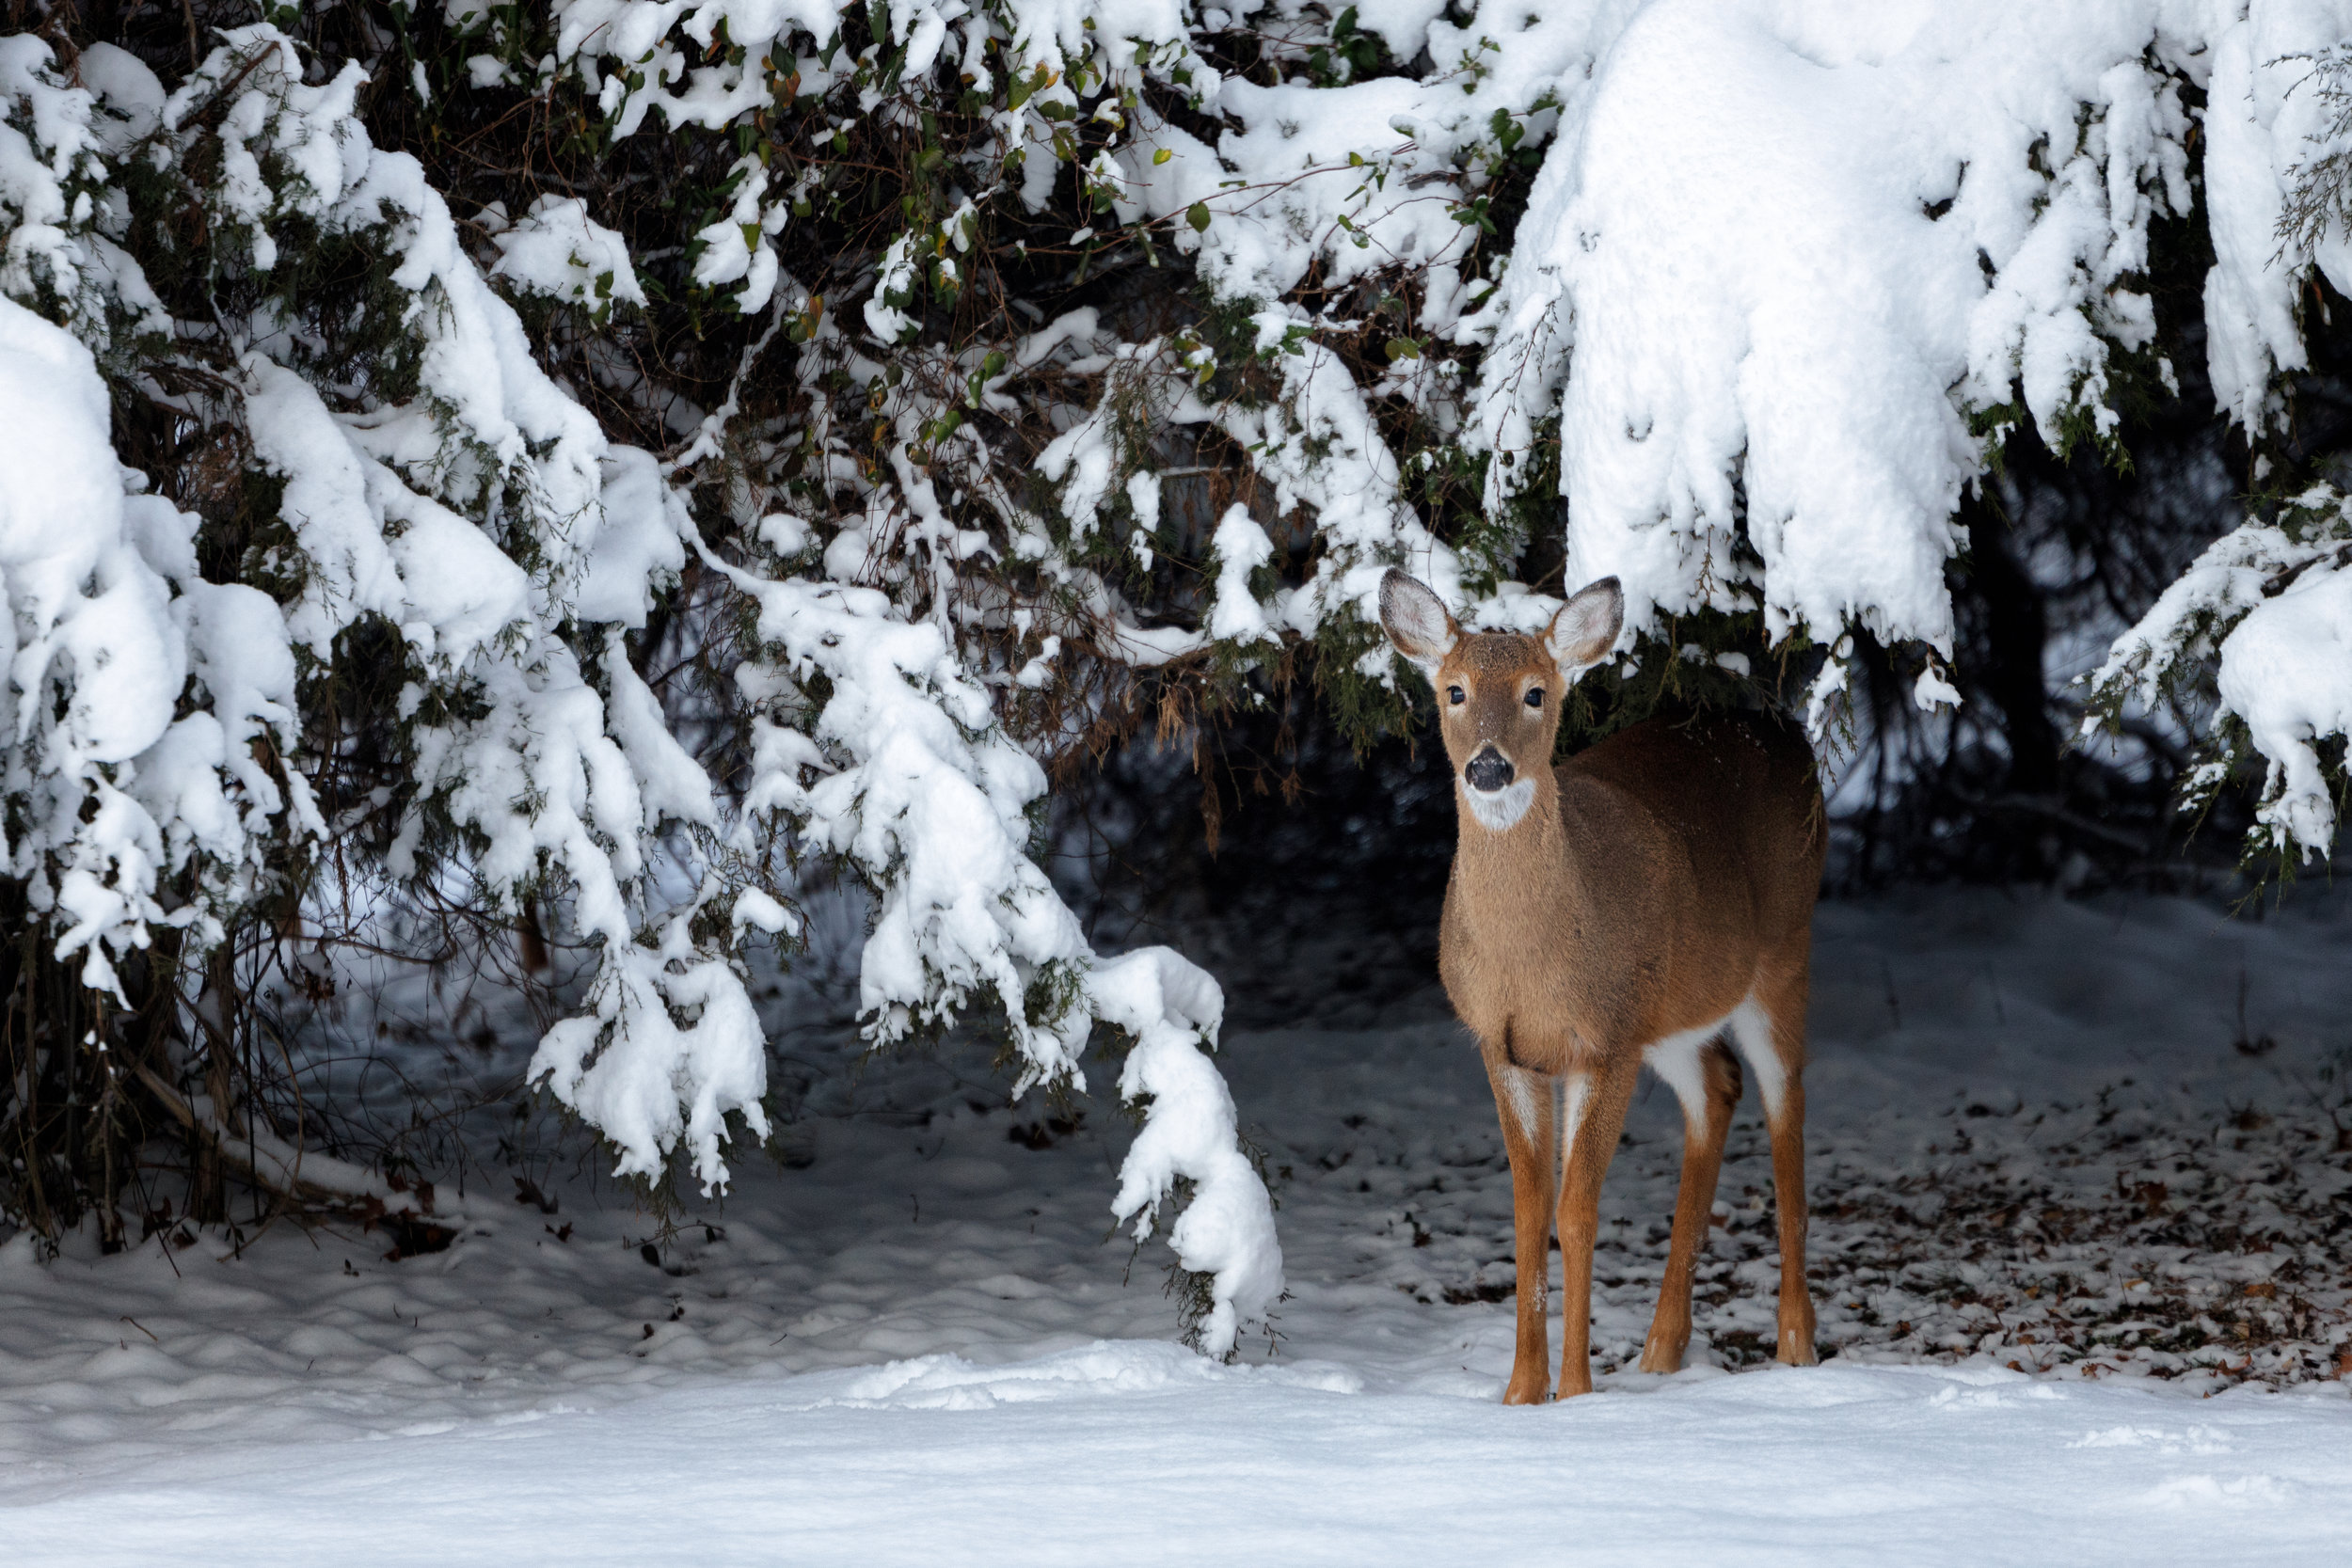 A white-tailed deer (odocoileus virginianus) stands under a snow covered evergreen in the winter in Virginia, USA by Ricky Kresslein. Shot at 1/320 sec., f/2.8, ISO 800.